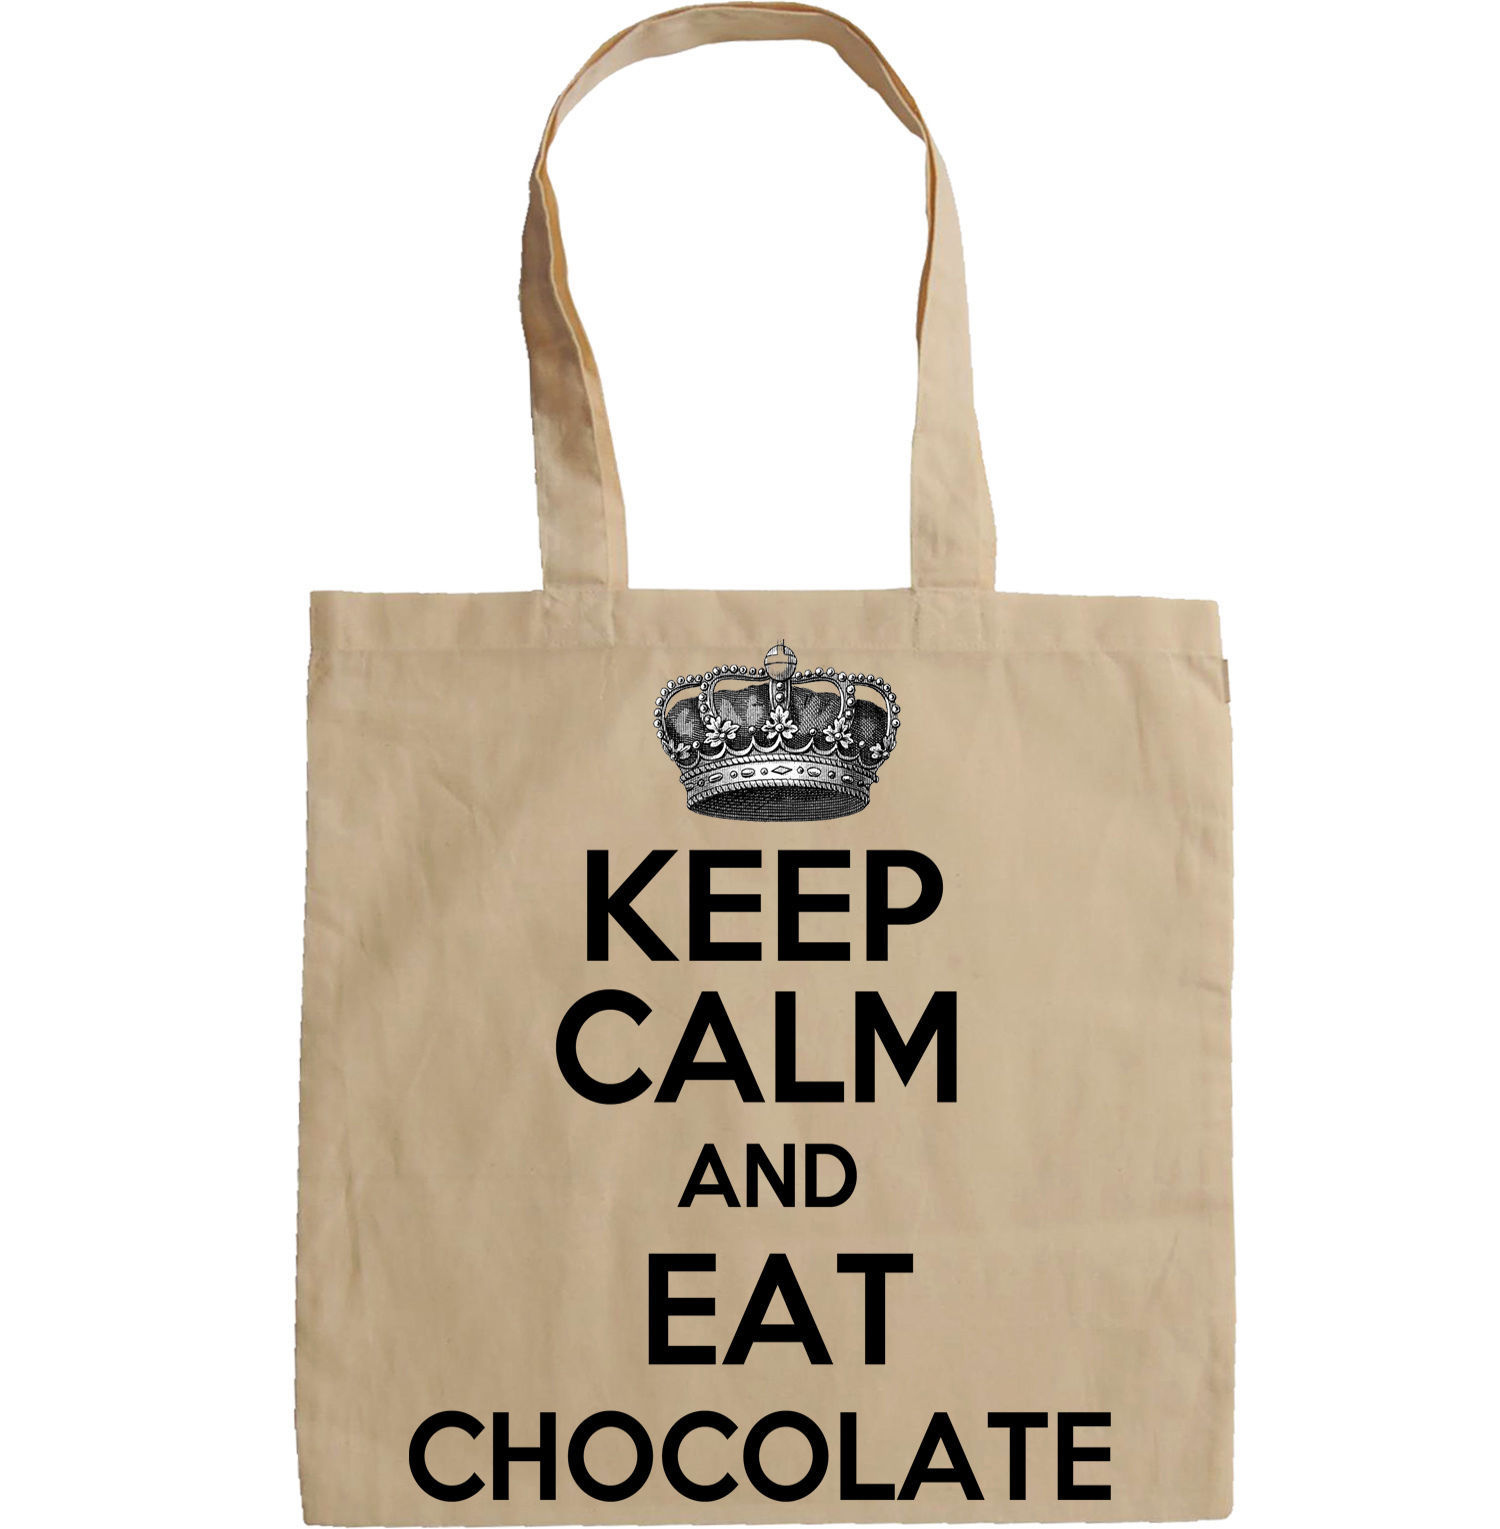 KEEP CALM AND EAT CHOCOLATE - NEW AMAZING GRAPHIC HAND BAG/TOTE BAG